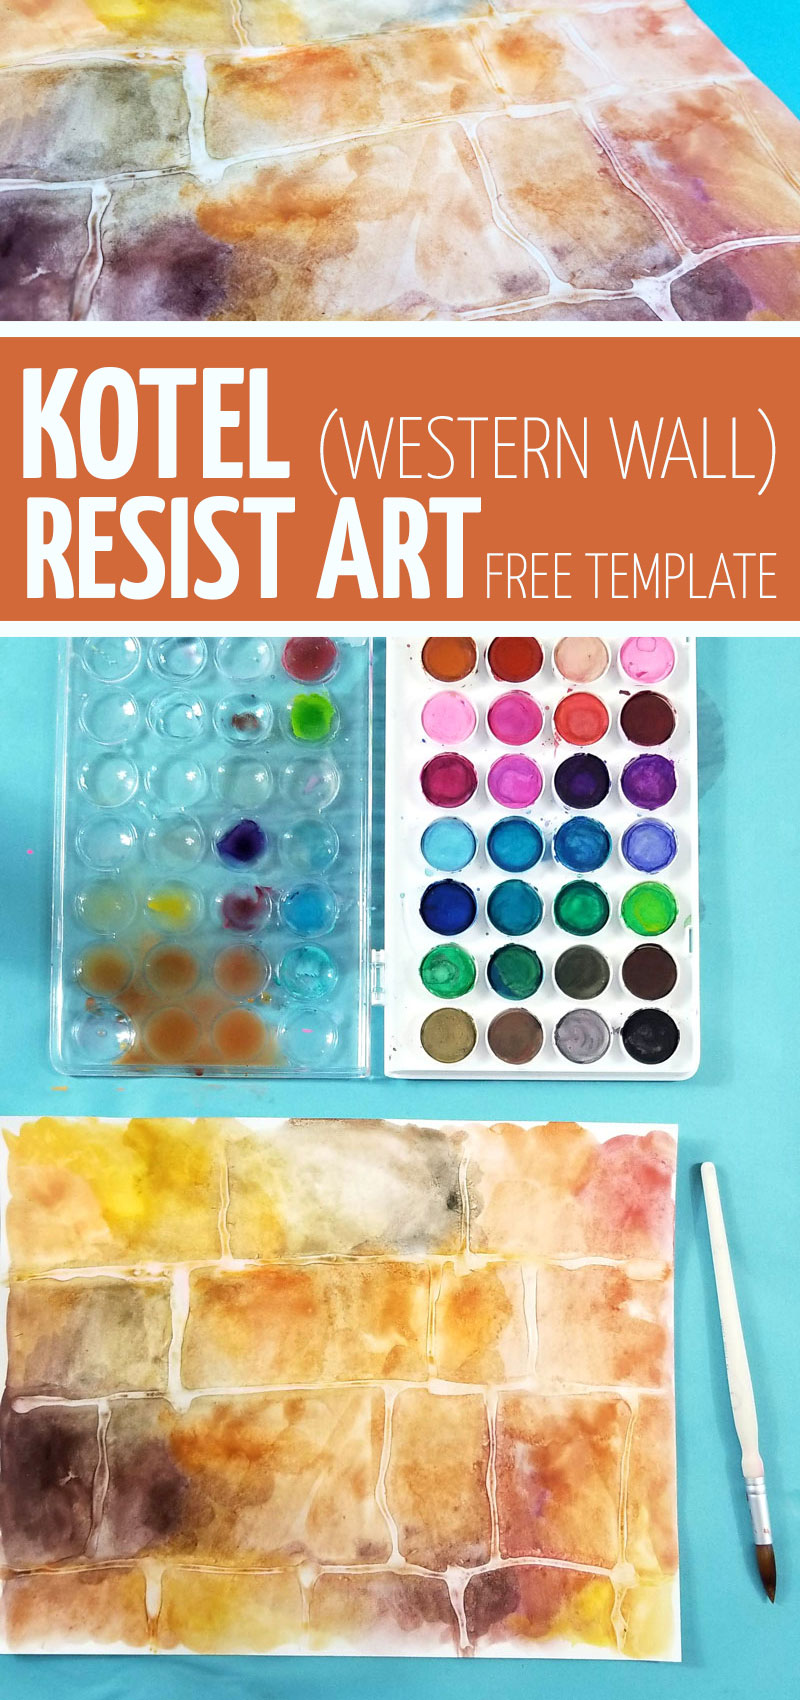 Make this beautiful Kotel art - Western Wall Process art using glue resist and watercolors. Download the free template for this craft - perfect for Tisha B'av crafts for kids and the 9 days. Also great for DIY sukkah decorations for kids - just laminate!